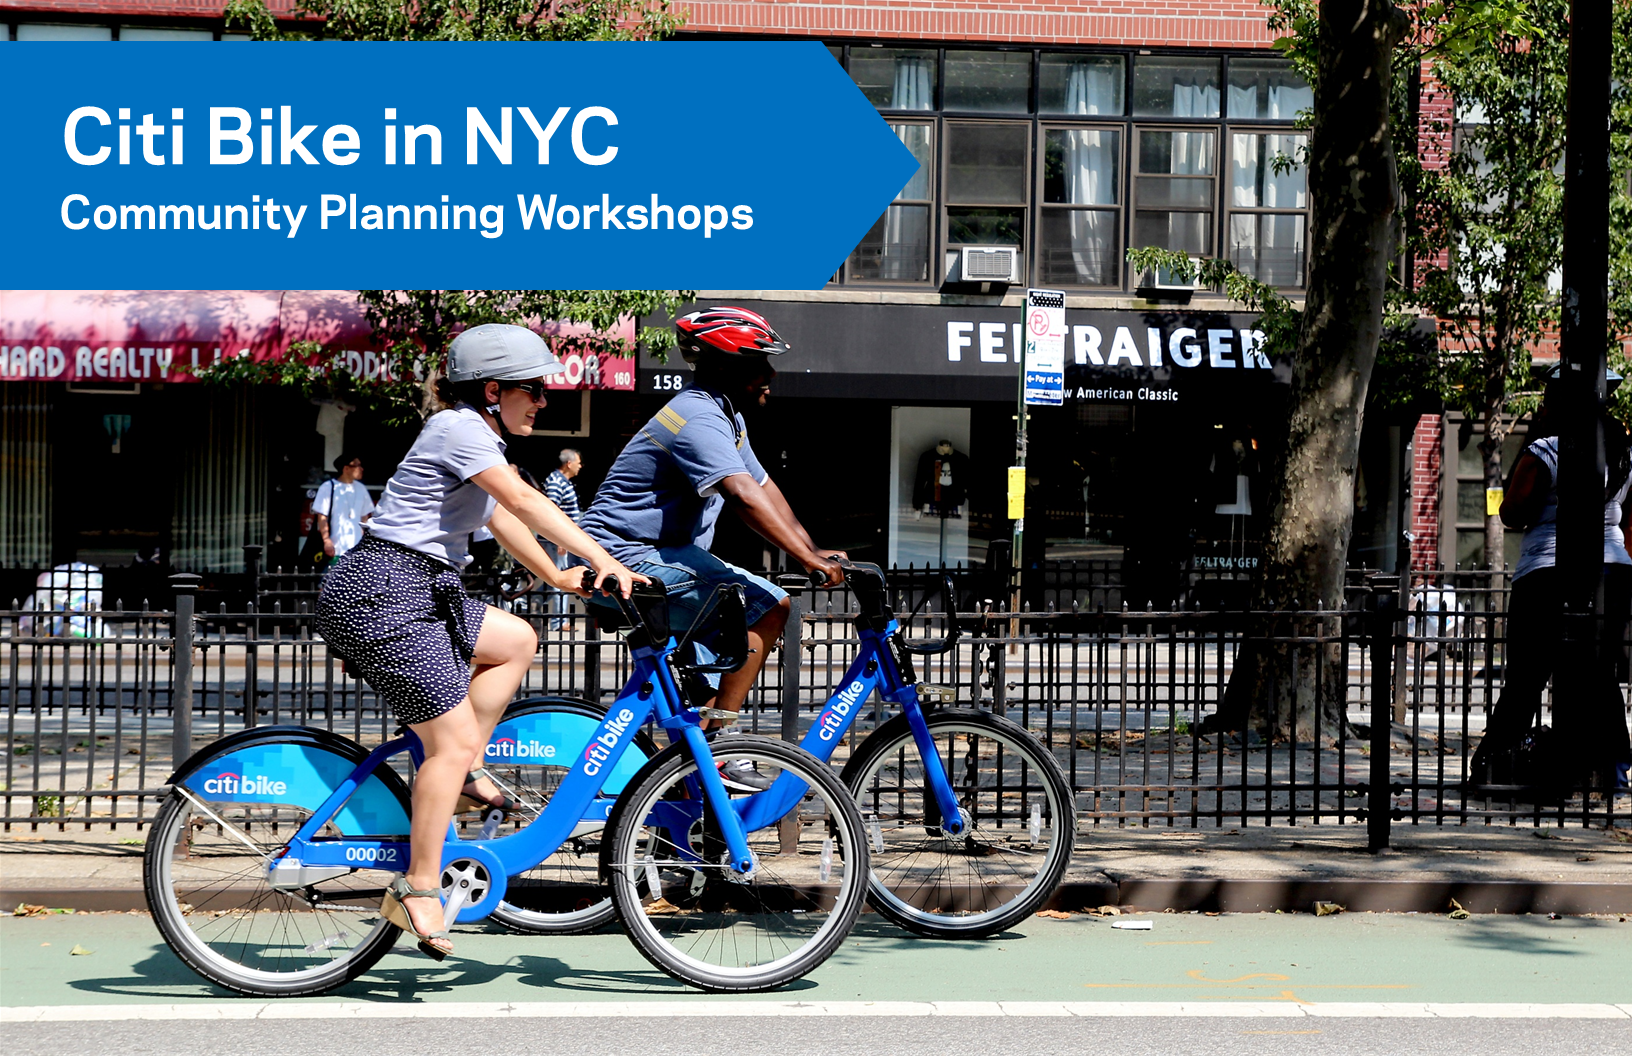 Z:\bike share\DOT Outreach & Communications\Website\WebMigration\Website Content\News & Events\Pics\Workshops